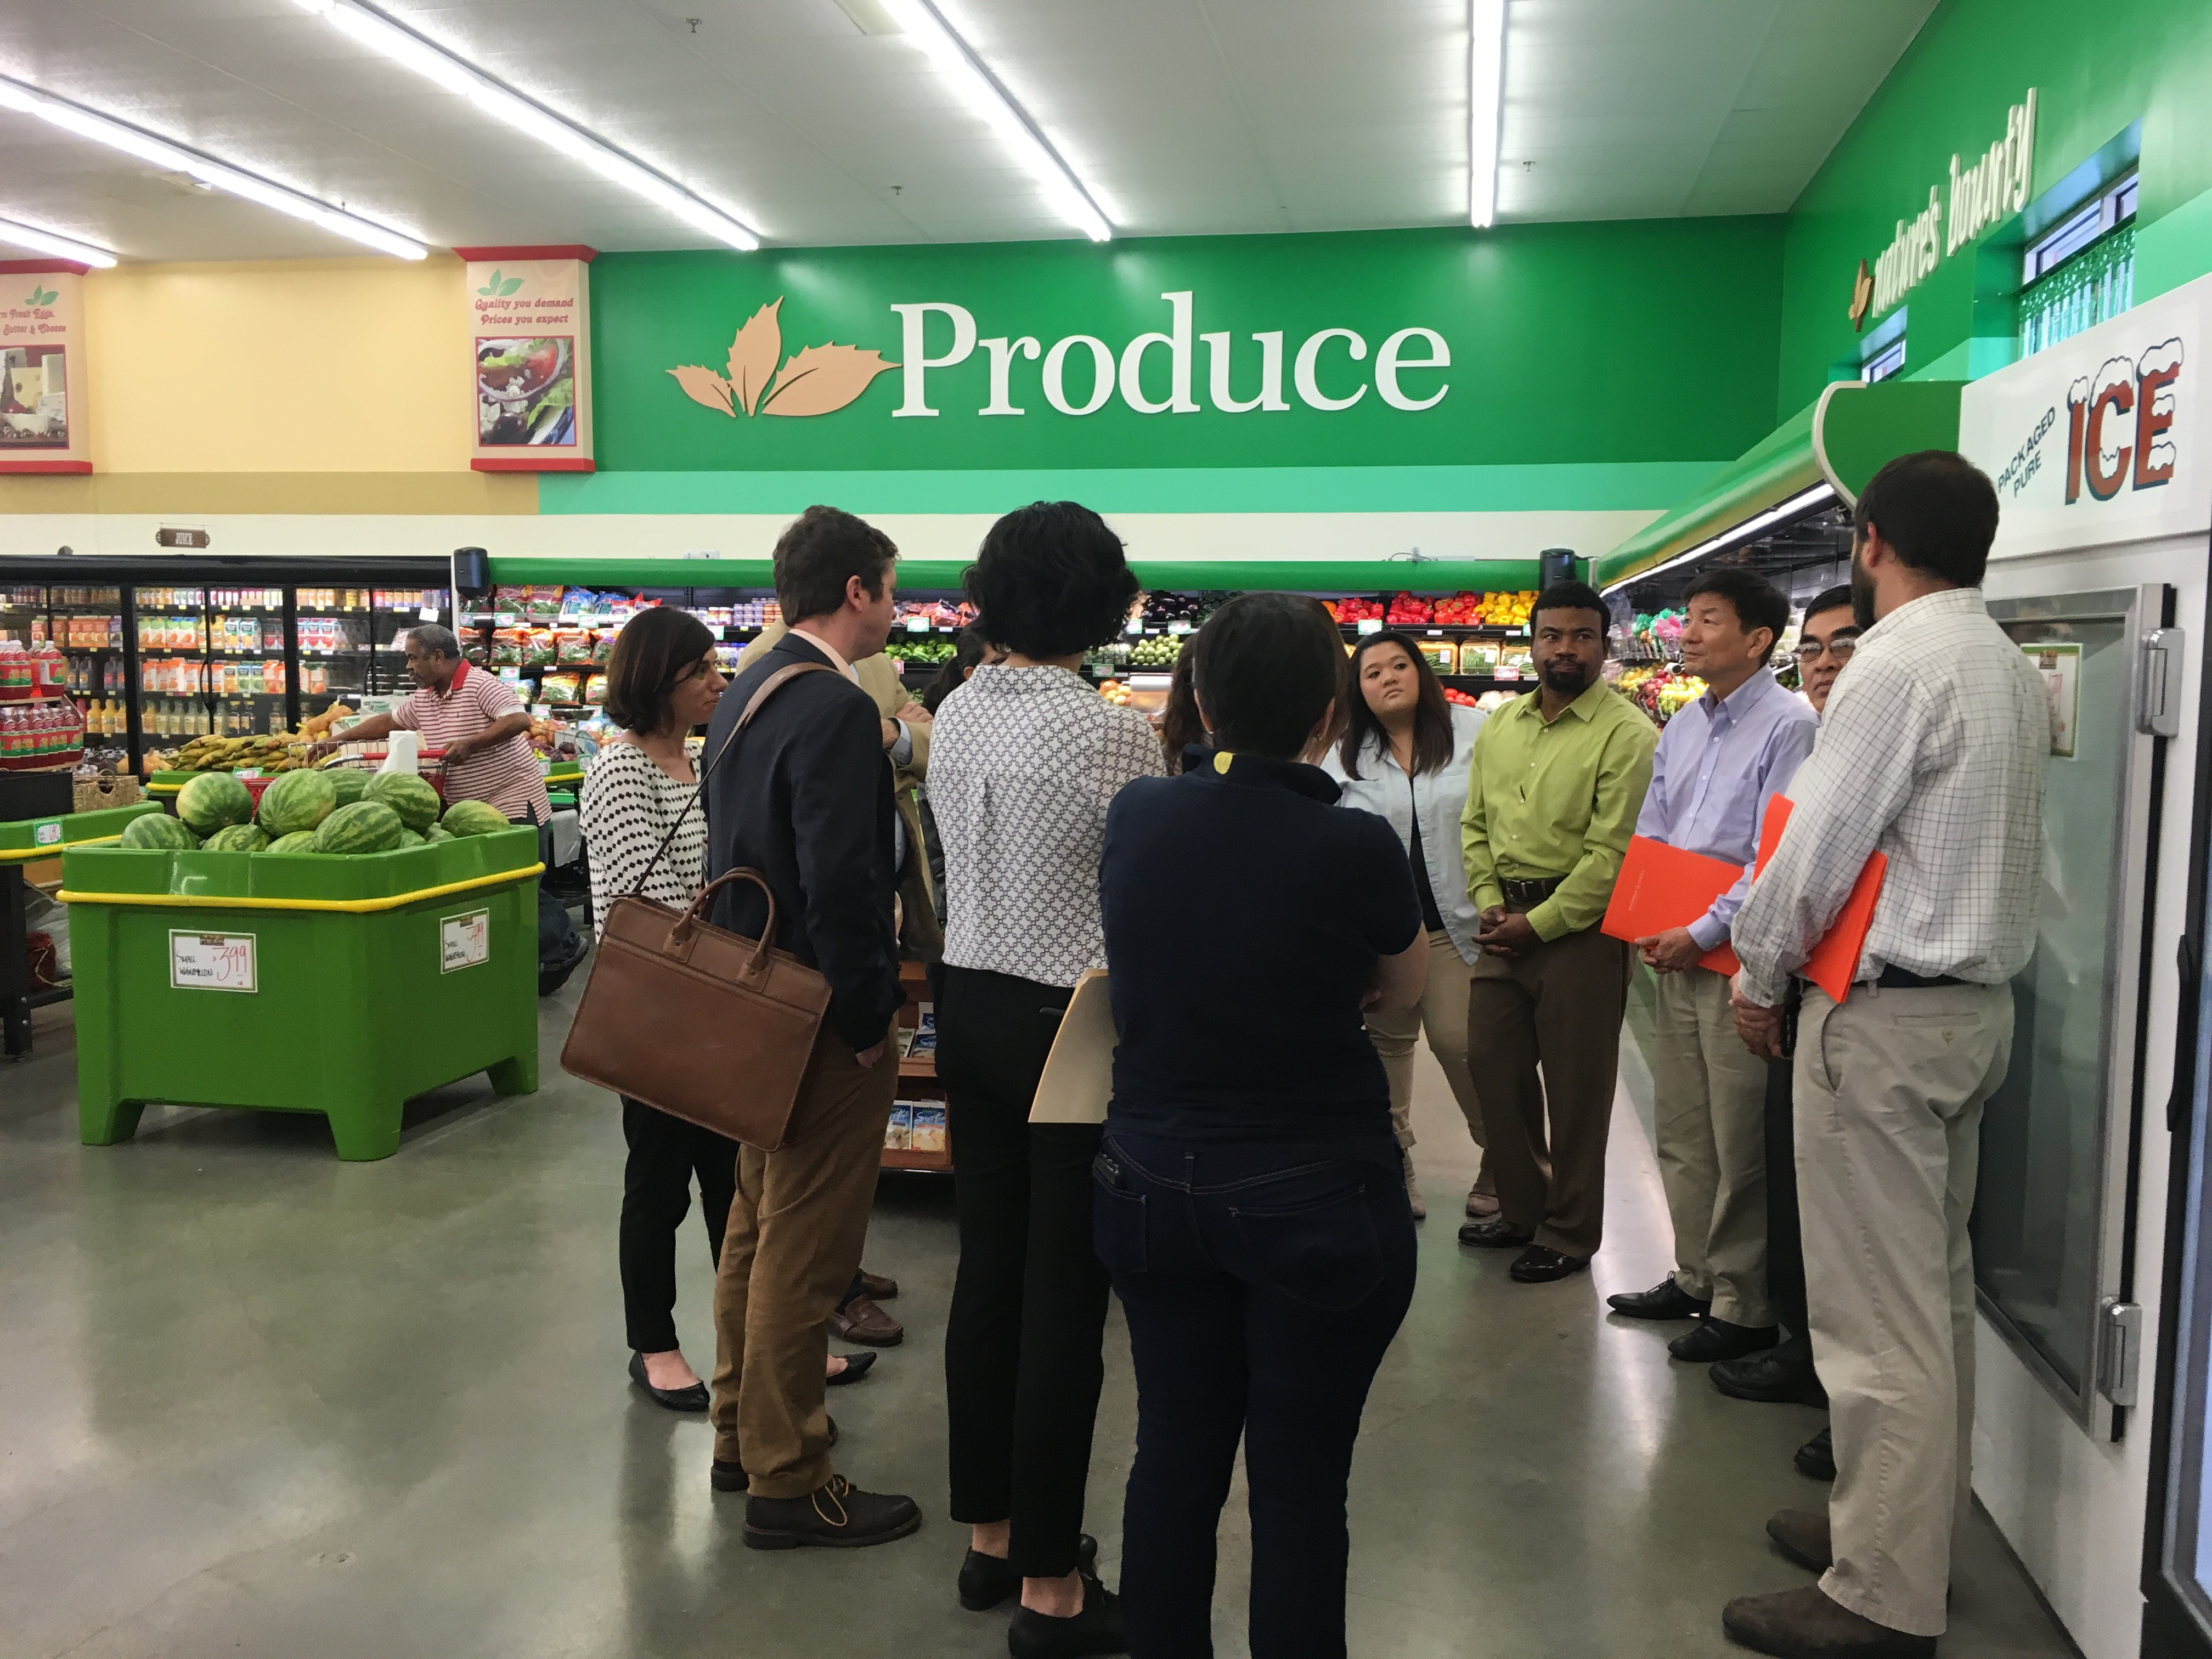 Houston_Grocery_Store_Tour_01.jpg